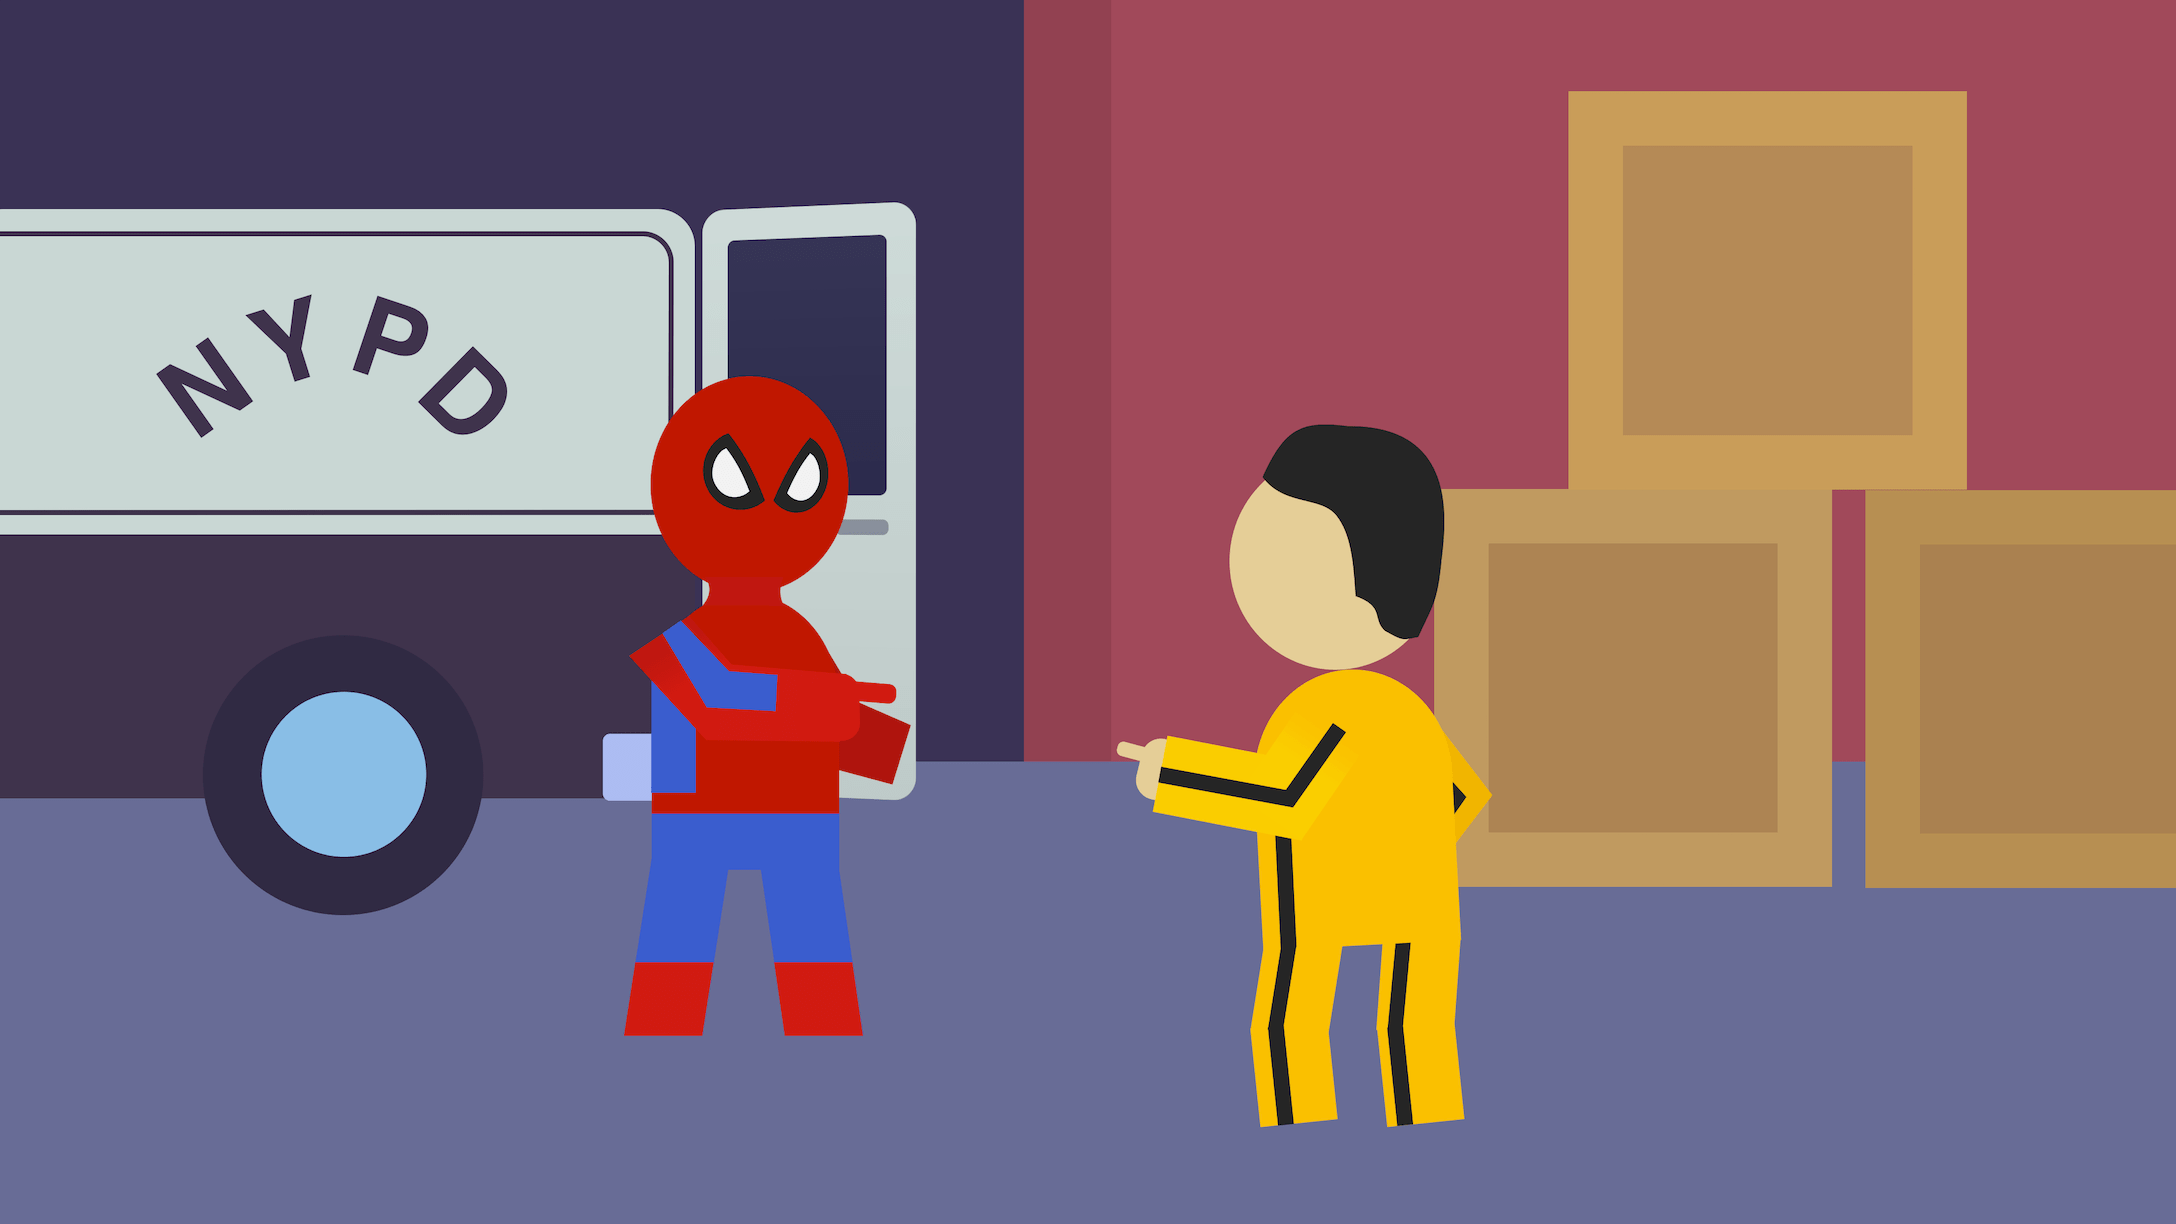 Spiderman and Bruce Lee point at each other